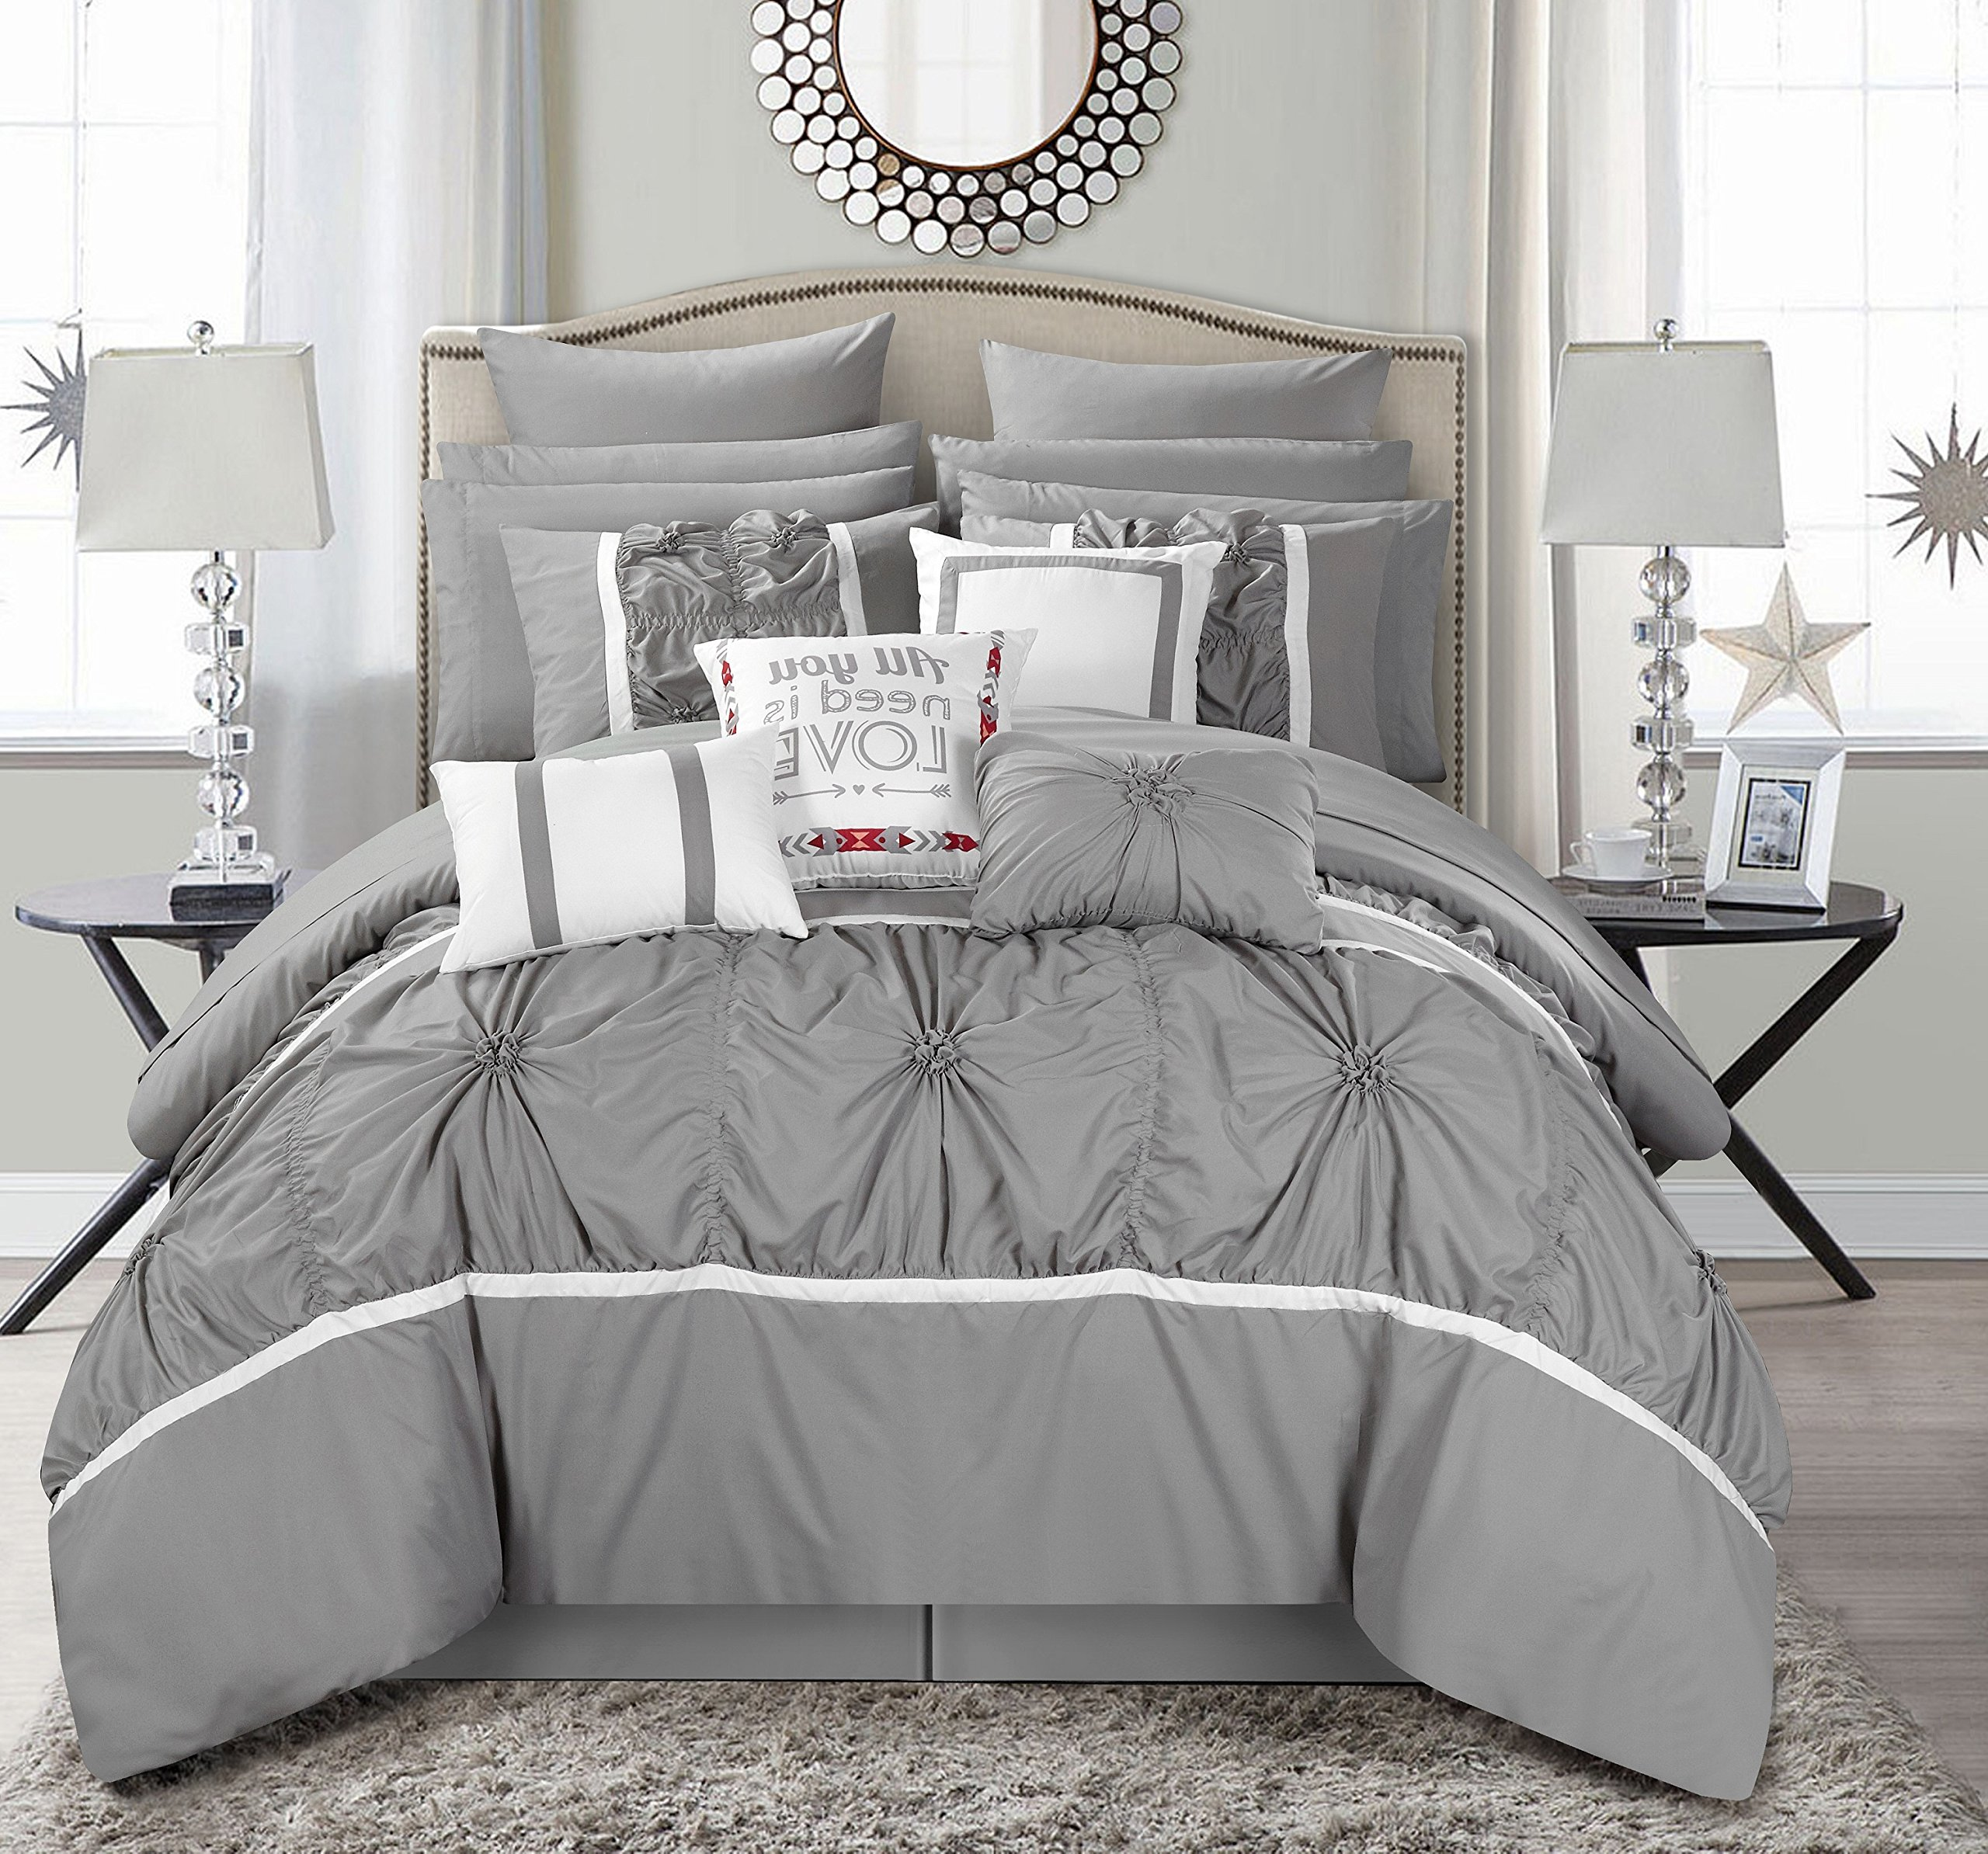 Chic Home CS2764-AN Ashville 16 Piece Bed in A Bag Comforter Set, Silver, Queen by Chic Home